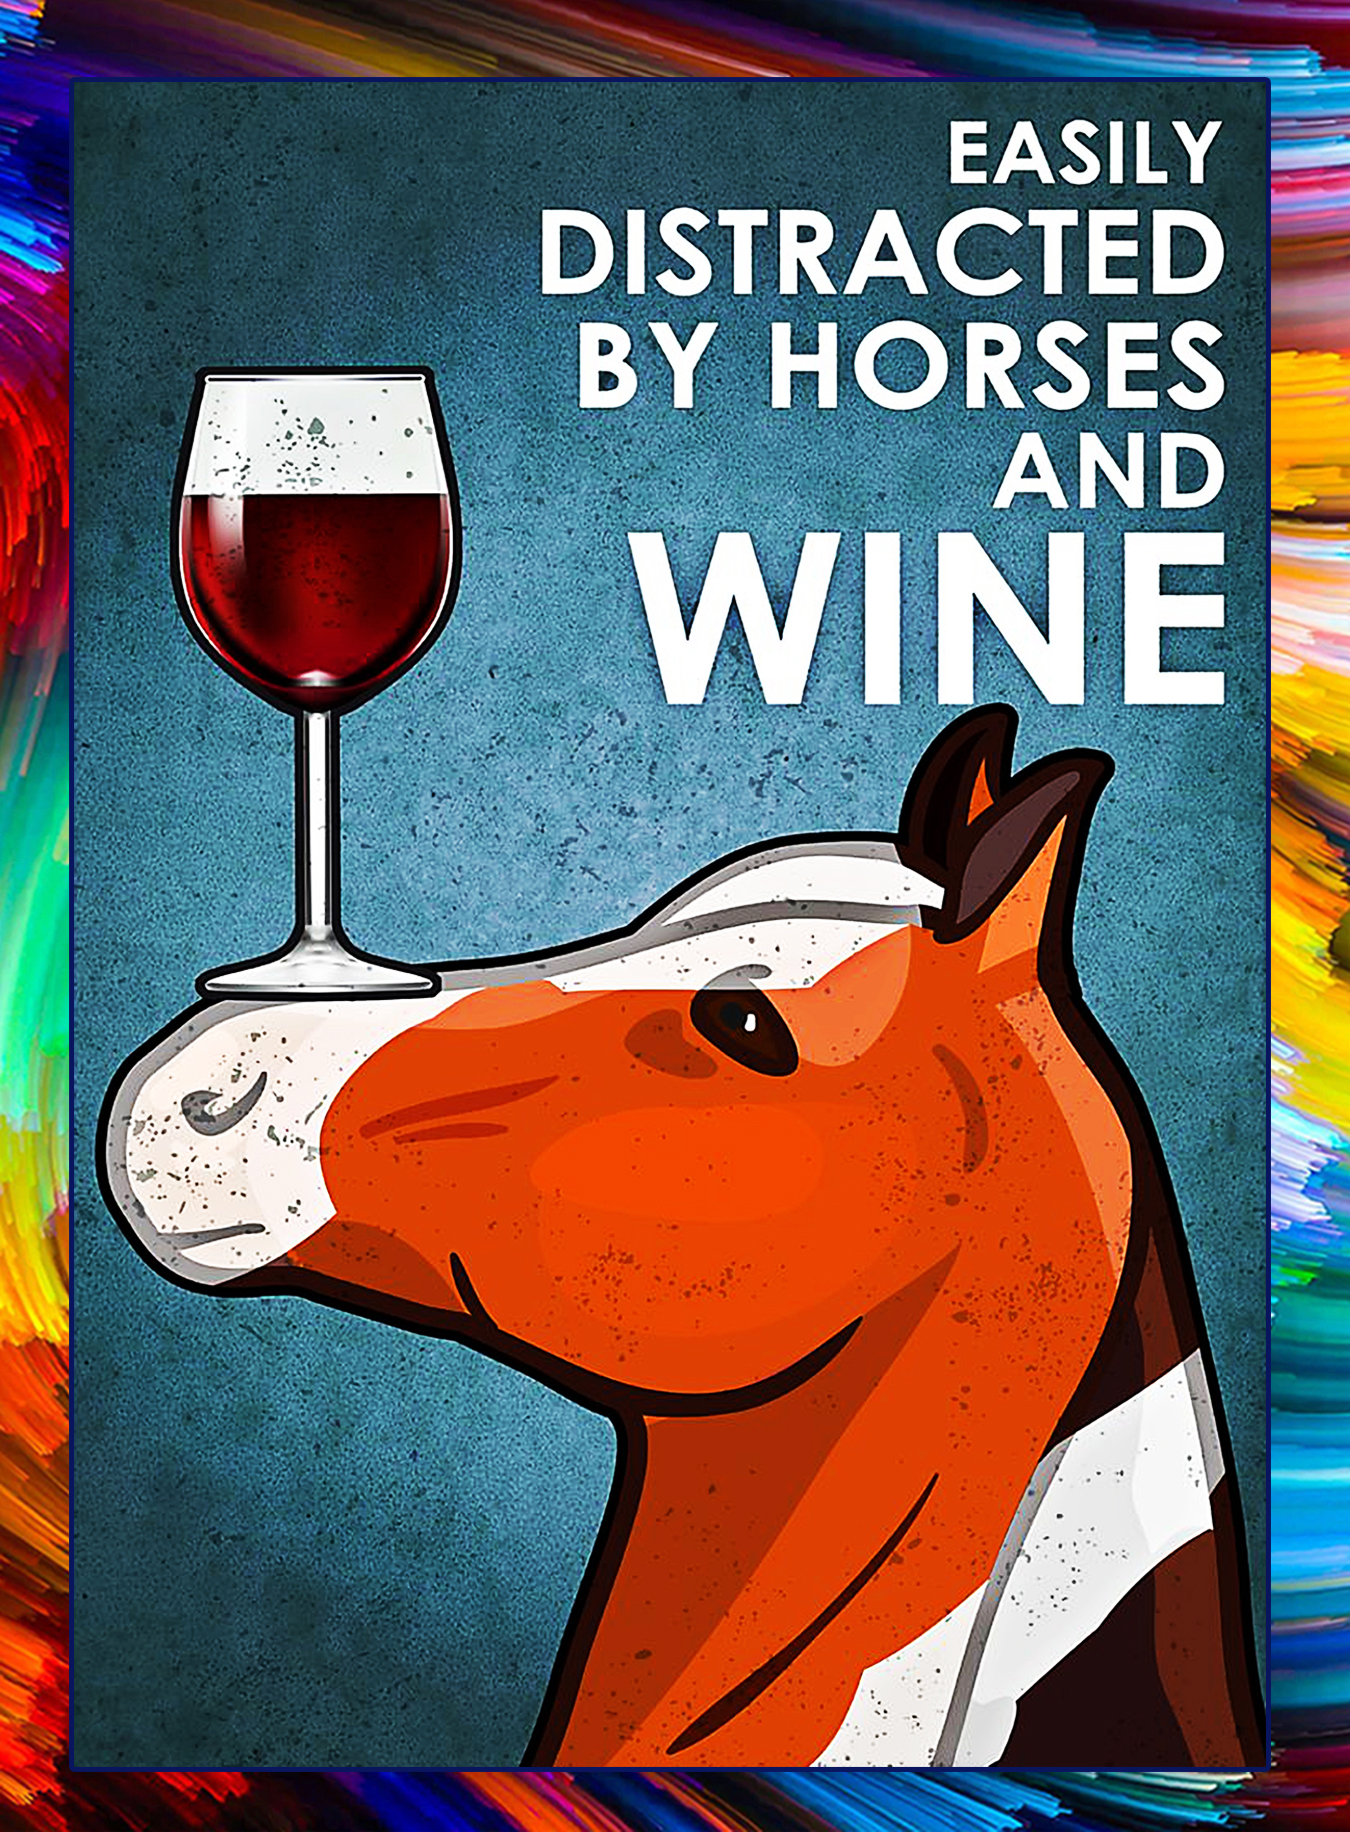 Easily distracted by horses and wine poster - A2